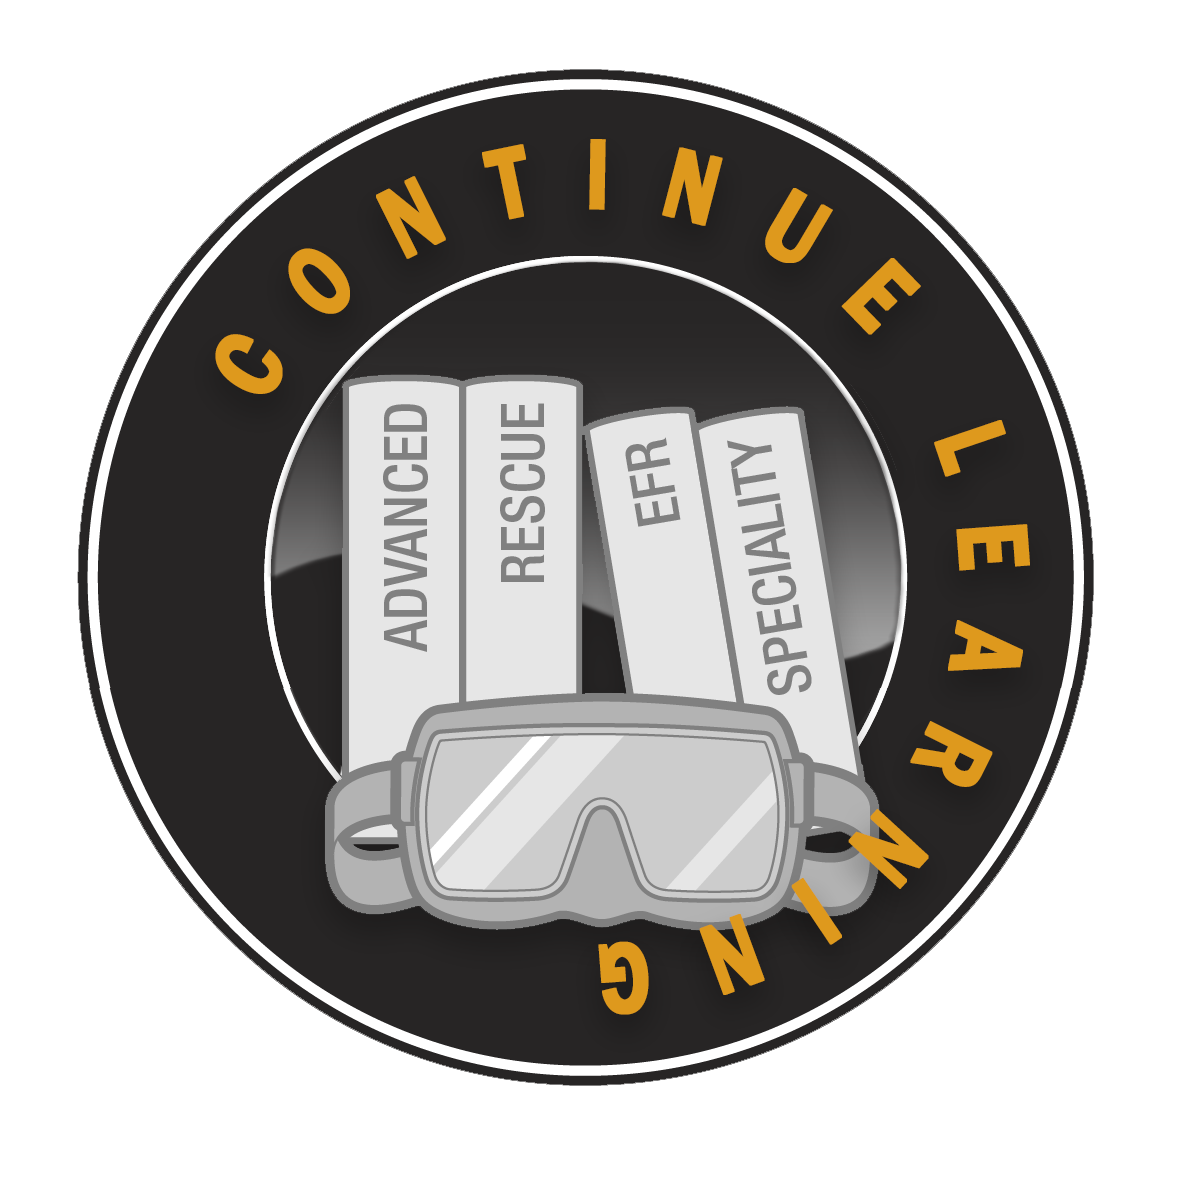 continue-learning-logo.png